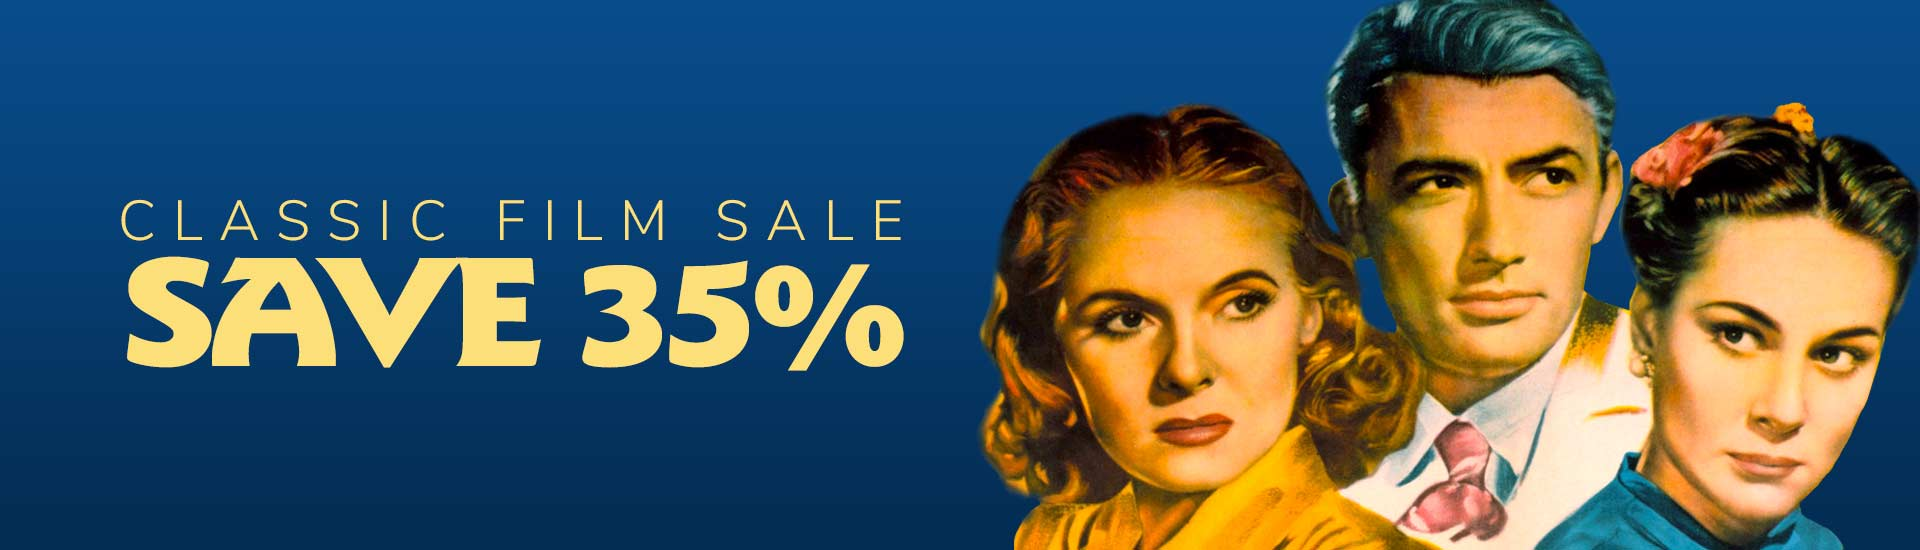 Classic Films Save 35%